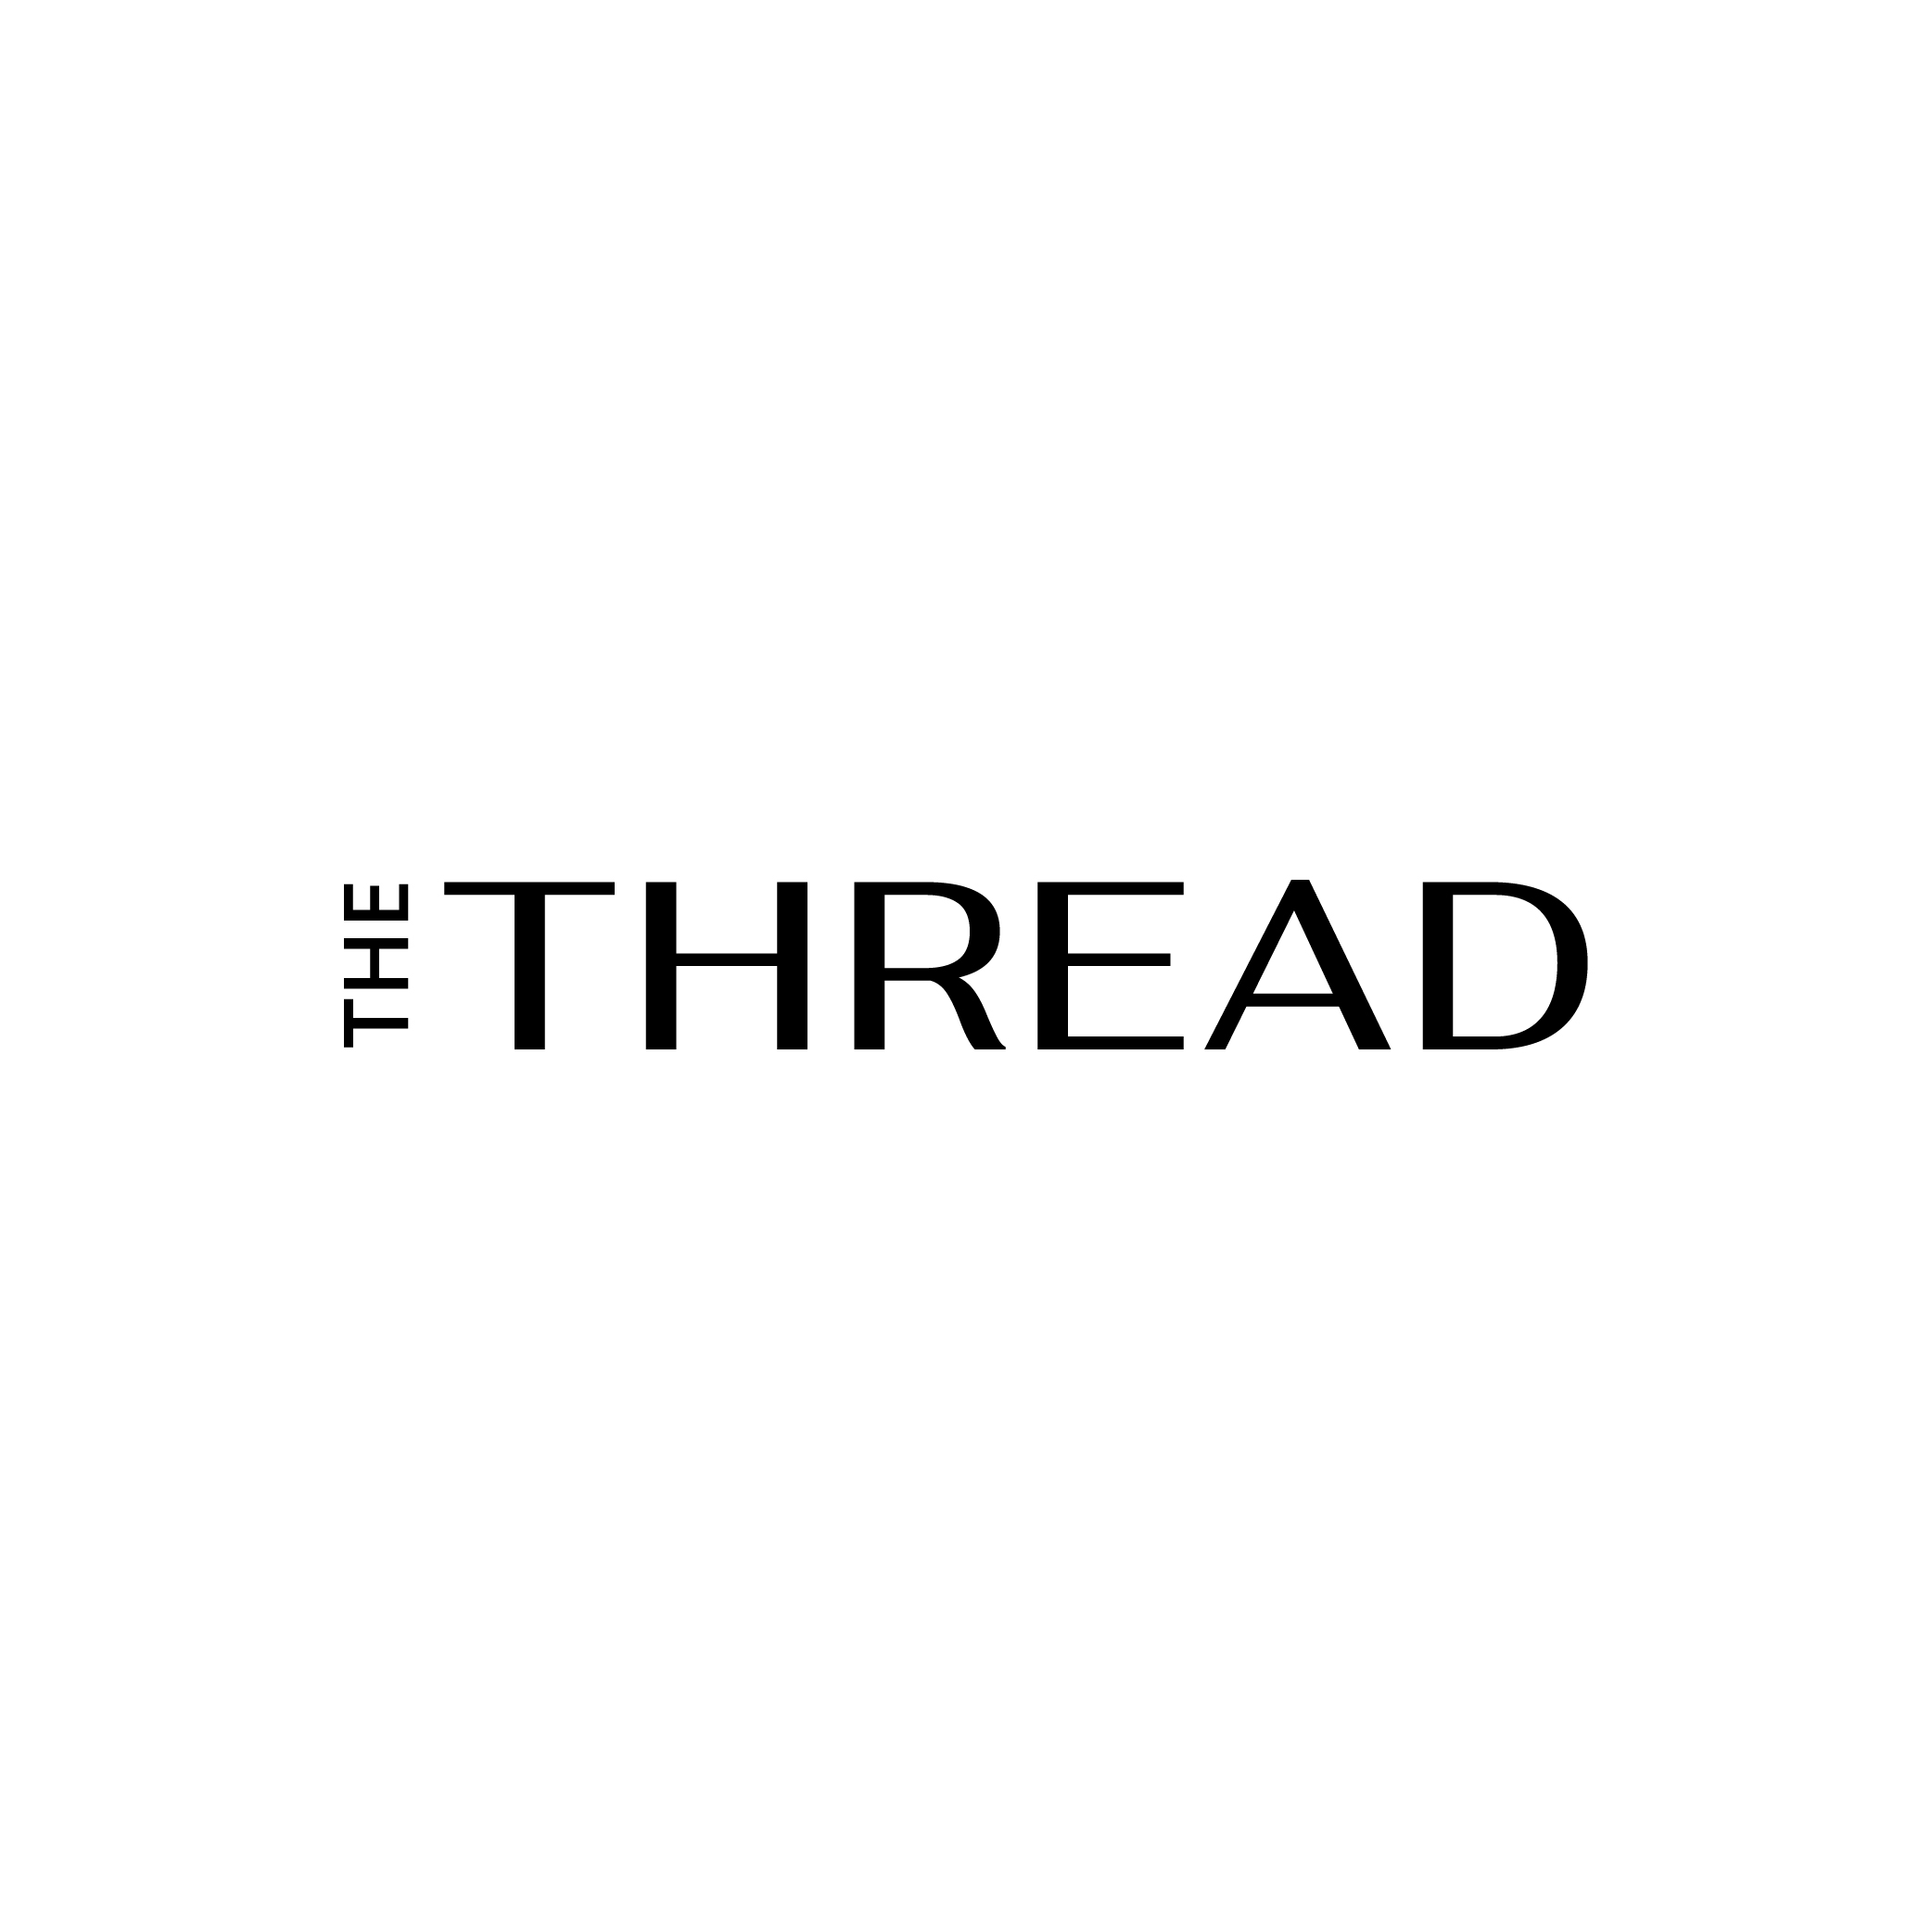 Introducing The Thread: The new online publication on a mission to take up space